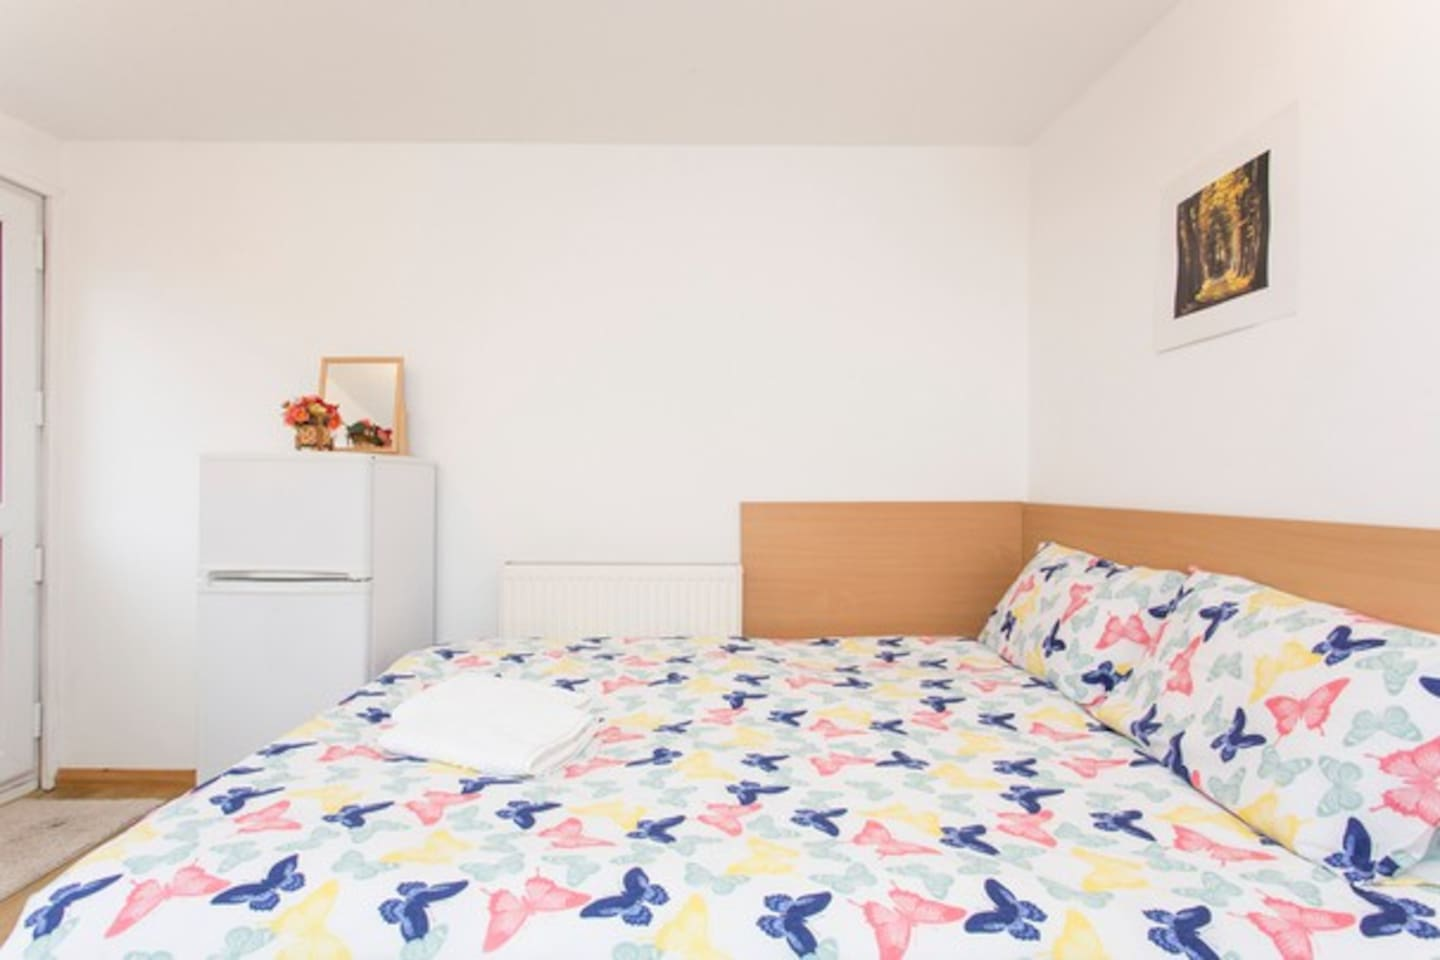 Private EN-SUITE 5 min walk to London Excel, 100% Acceptance & Response Rate, Last Minute Requests & Emergency Bookings, 10min access O2 Arena, Stratford Int & Westfield, Canary Wharf, Bank, London Bridge, London Eye, Tower Bridge. Hosts support 24/7